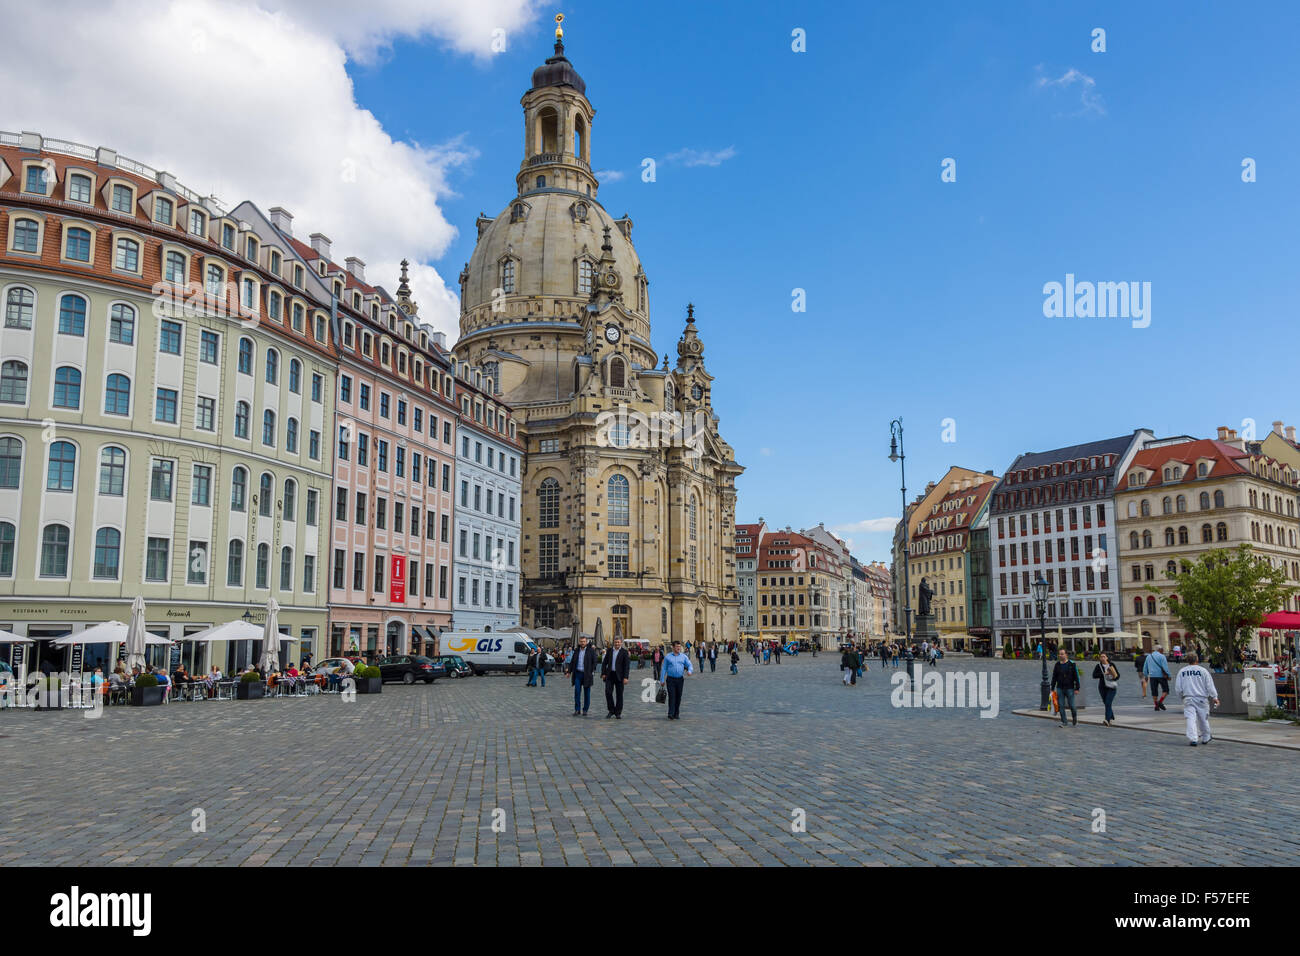 Neumarkt square and Dresden Frauenkirche (Church of Our Lady). Dresden is the capital of Saxony. Stock Photo